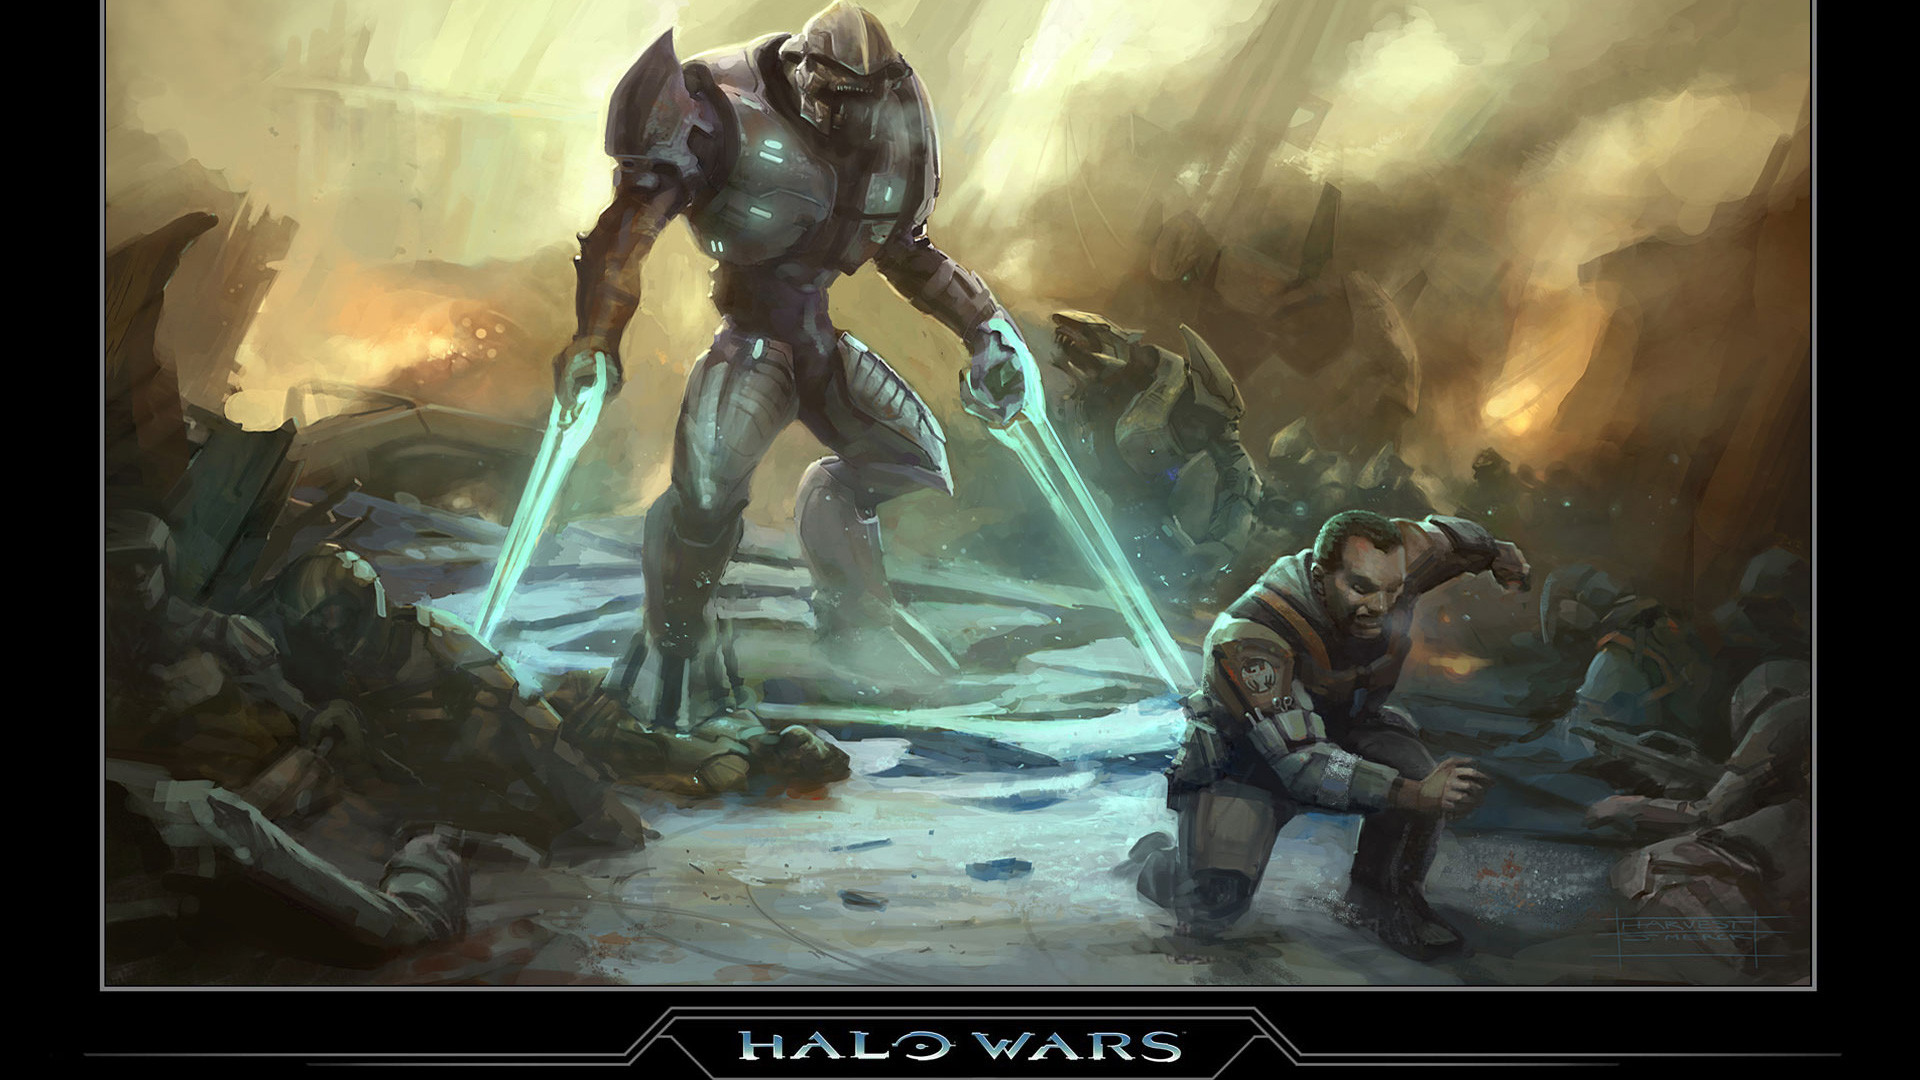 1920x1080 Wallpaper #11 Wallpaper from Halo Wars